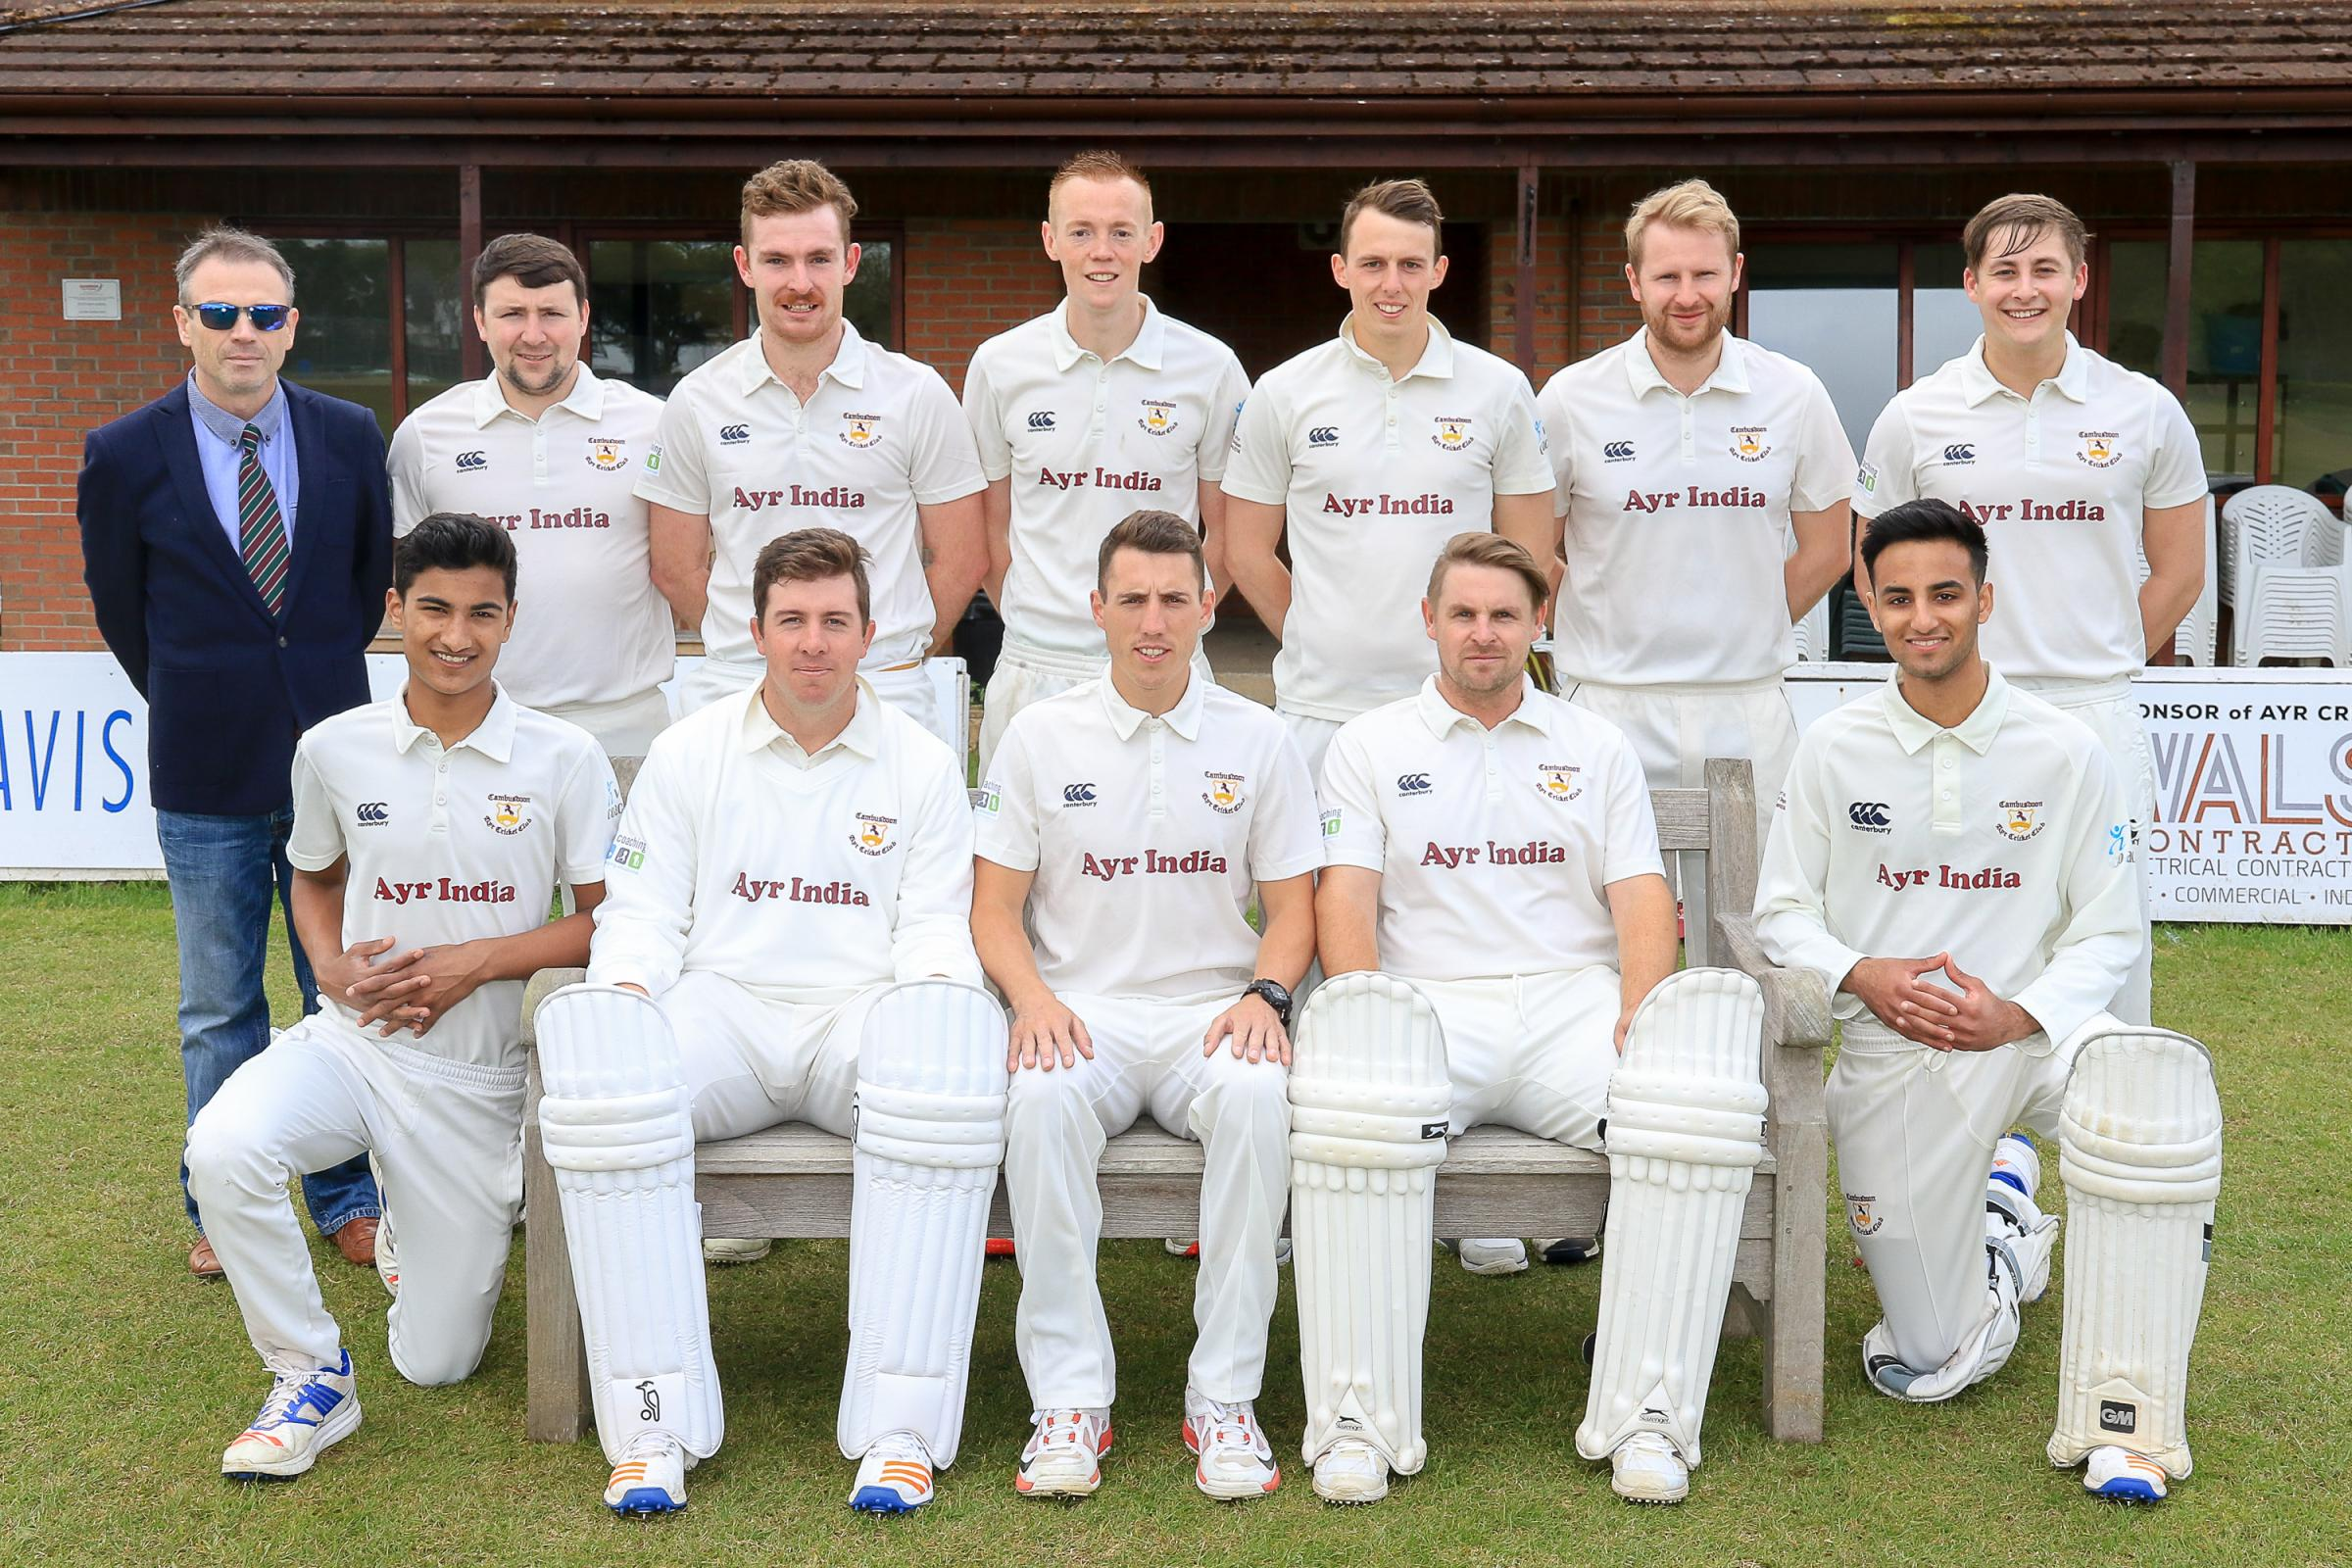 FUNDING BOOST: Ayr Cricket Club have gained a lotto support. Pictured are the 1st XI